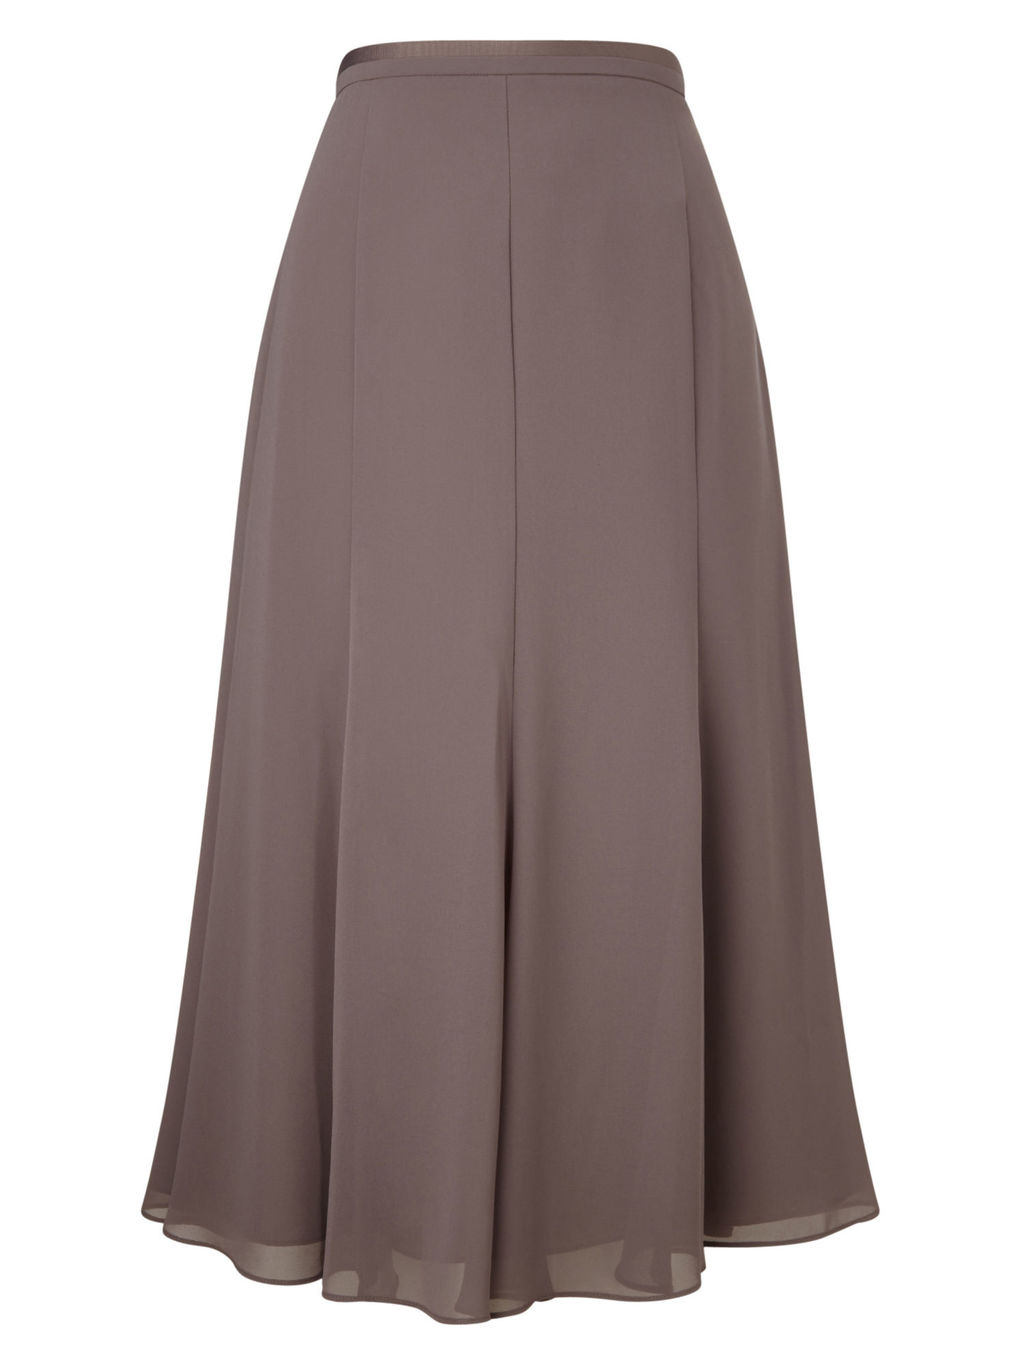 Gloria Grosgrain Skirt - length: calf length; pattern: plain; style: bias cut; waist: high rise; fit: bias; predominant colour: taupe; fibres: polyester/polyamide - 100%; occasions: occasion; hip detail: soft pleats at hip/draping at hip/flared at hip; waist detail: narrow waistband; texture group: sheer fabrics/chiffon/organza etc.; pattern type: fabric; season: s/s 2016